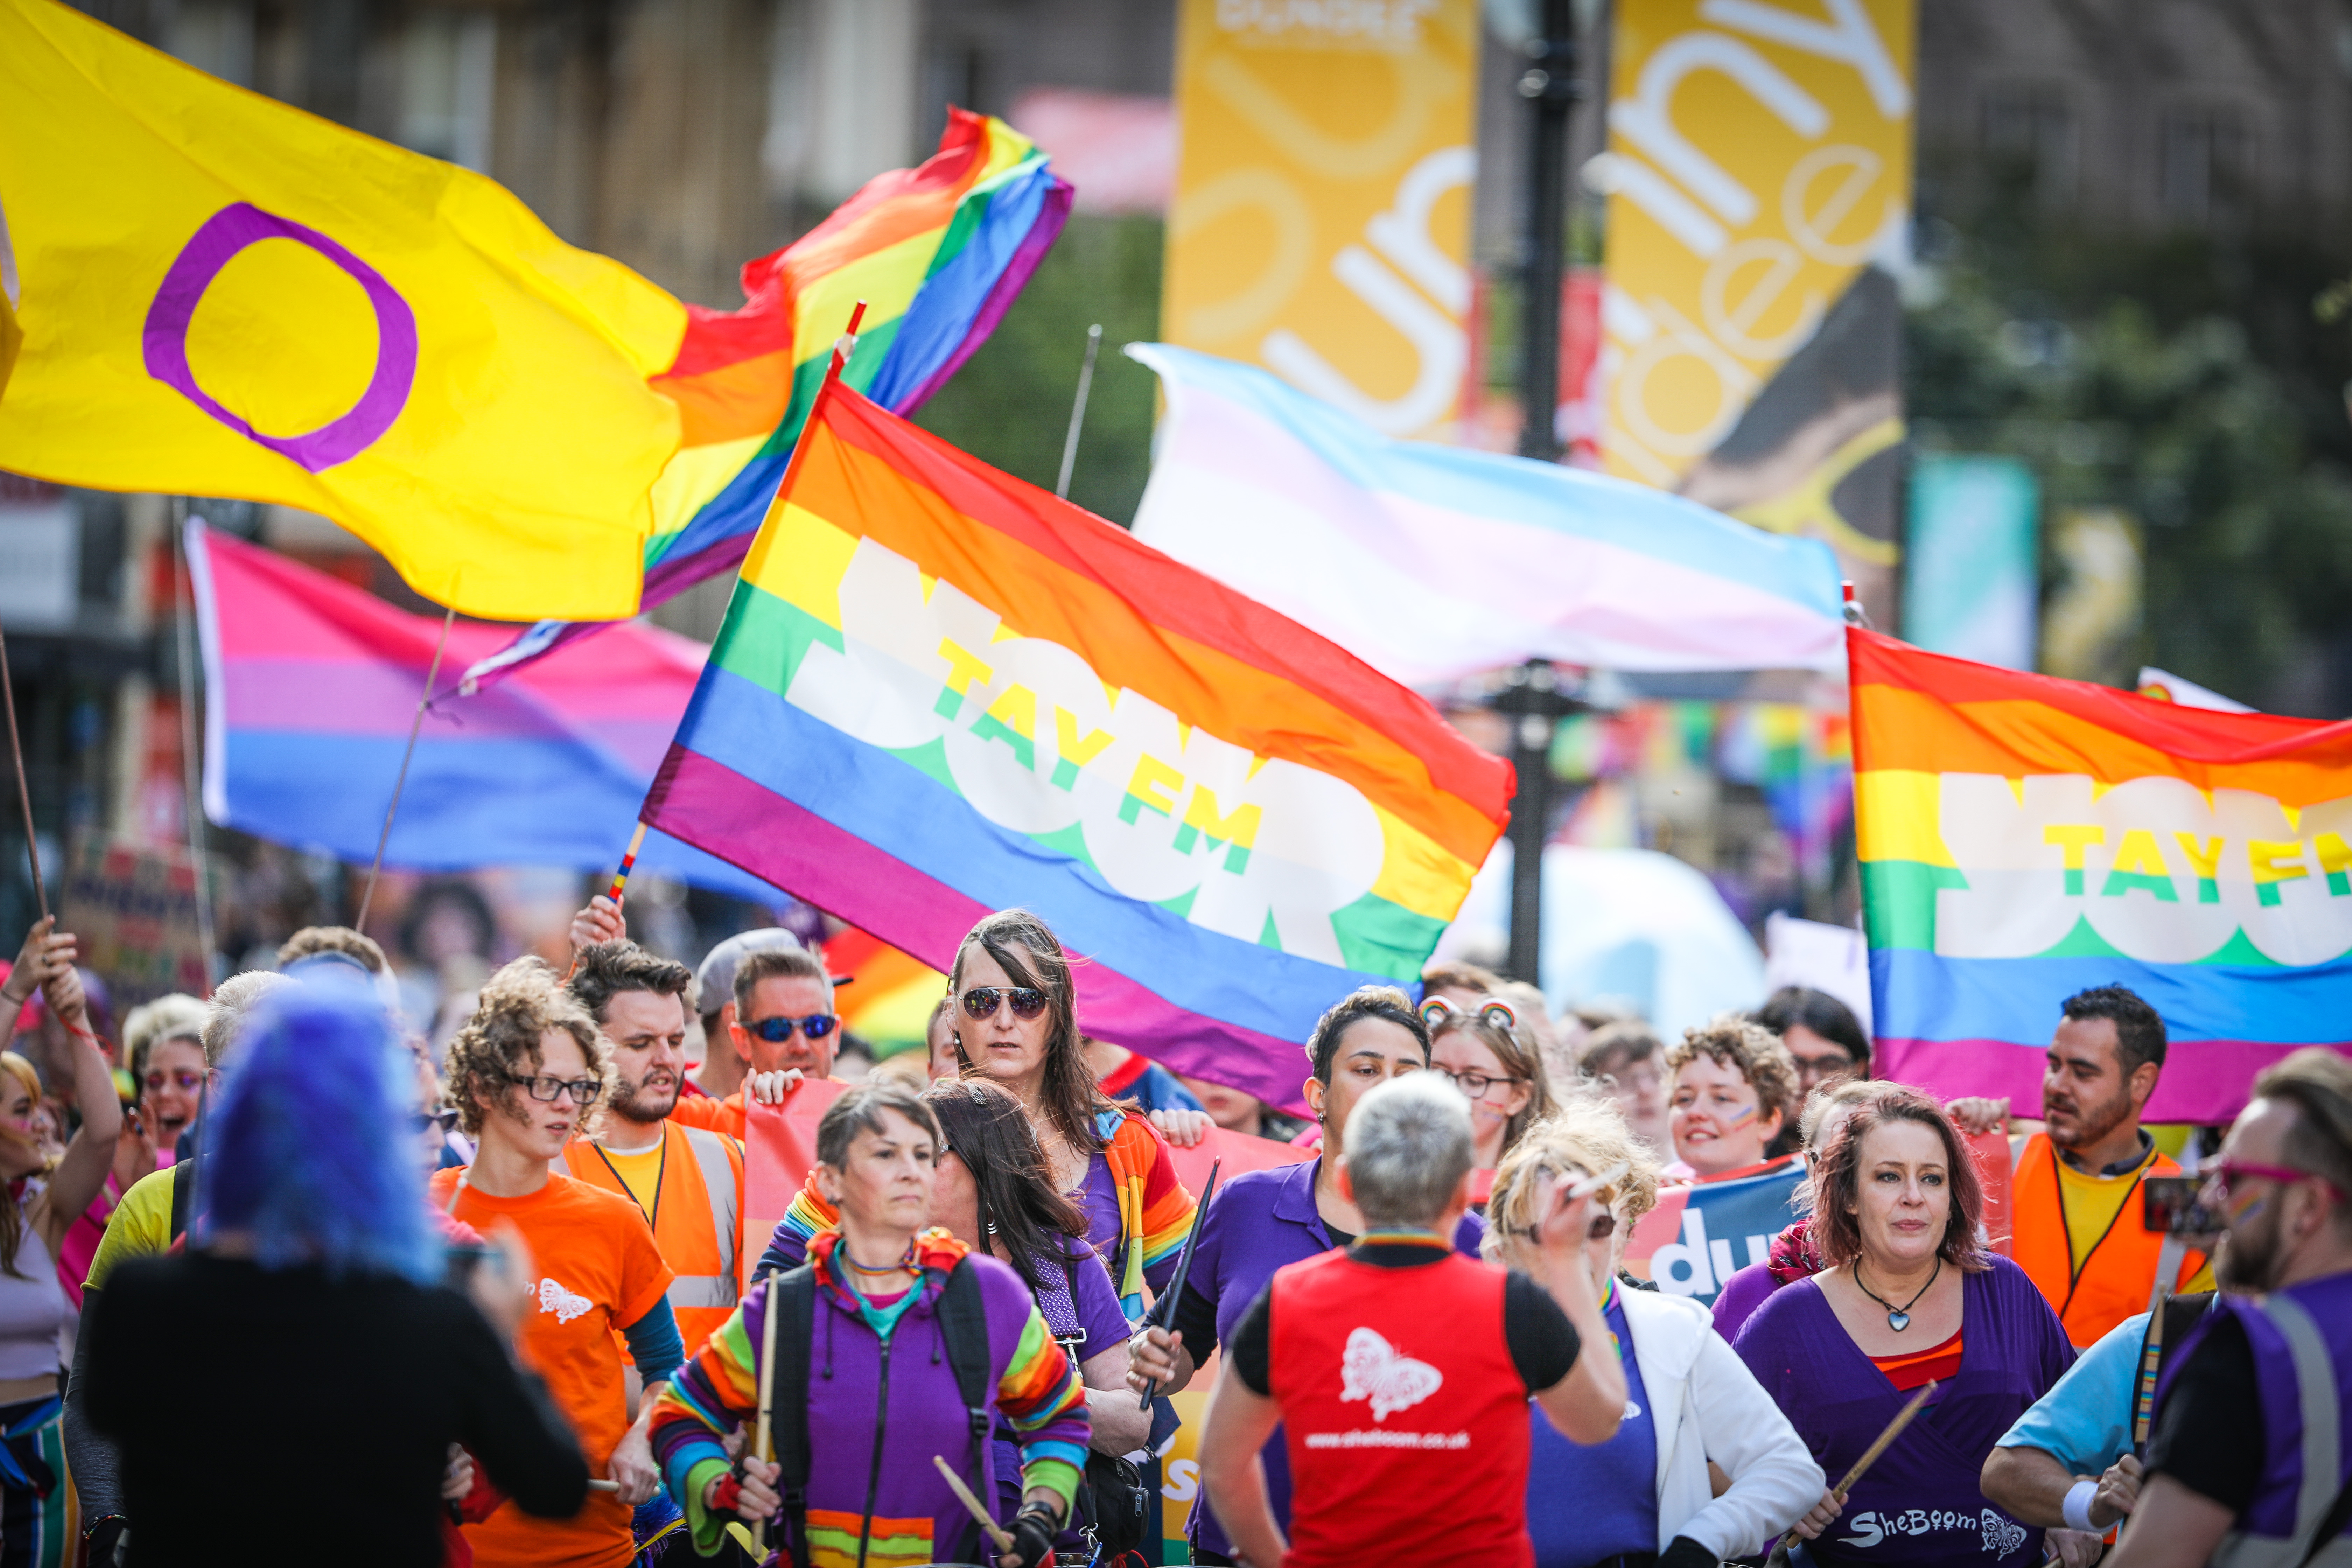 The event this Sunday comes just a few weeks before Dundee Pride, which was held for the first time last year